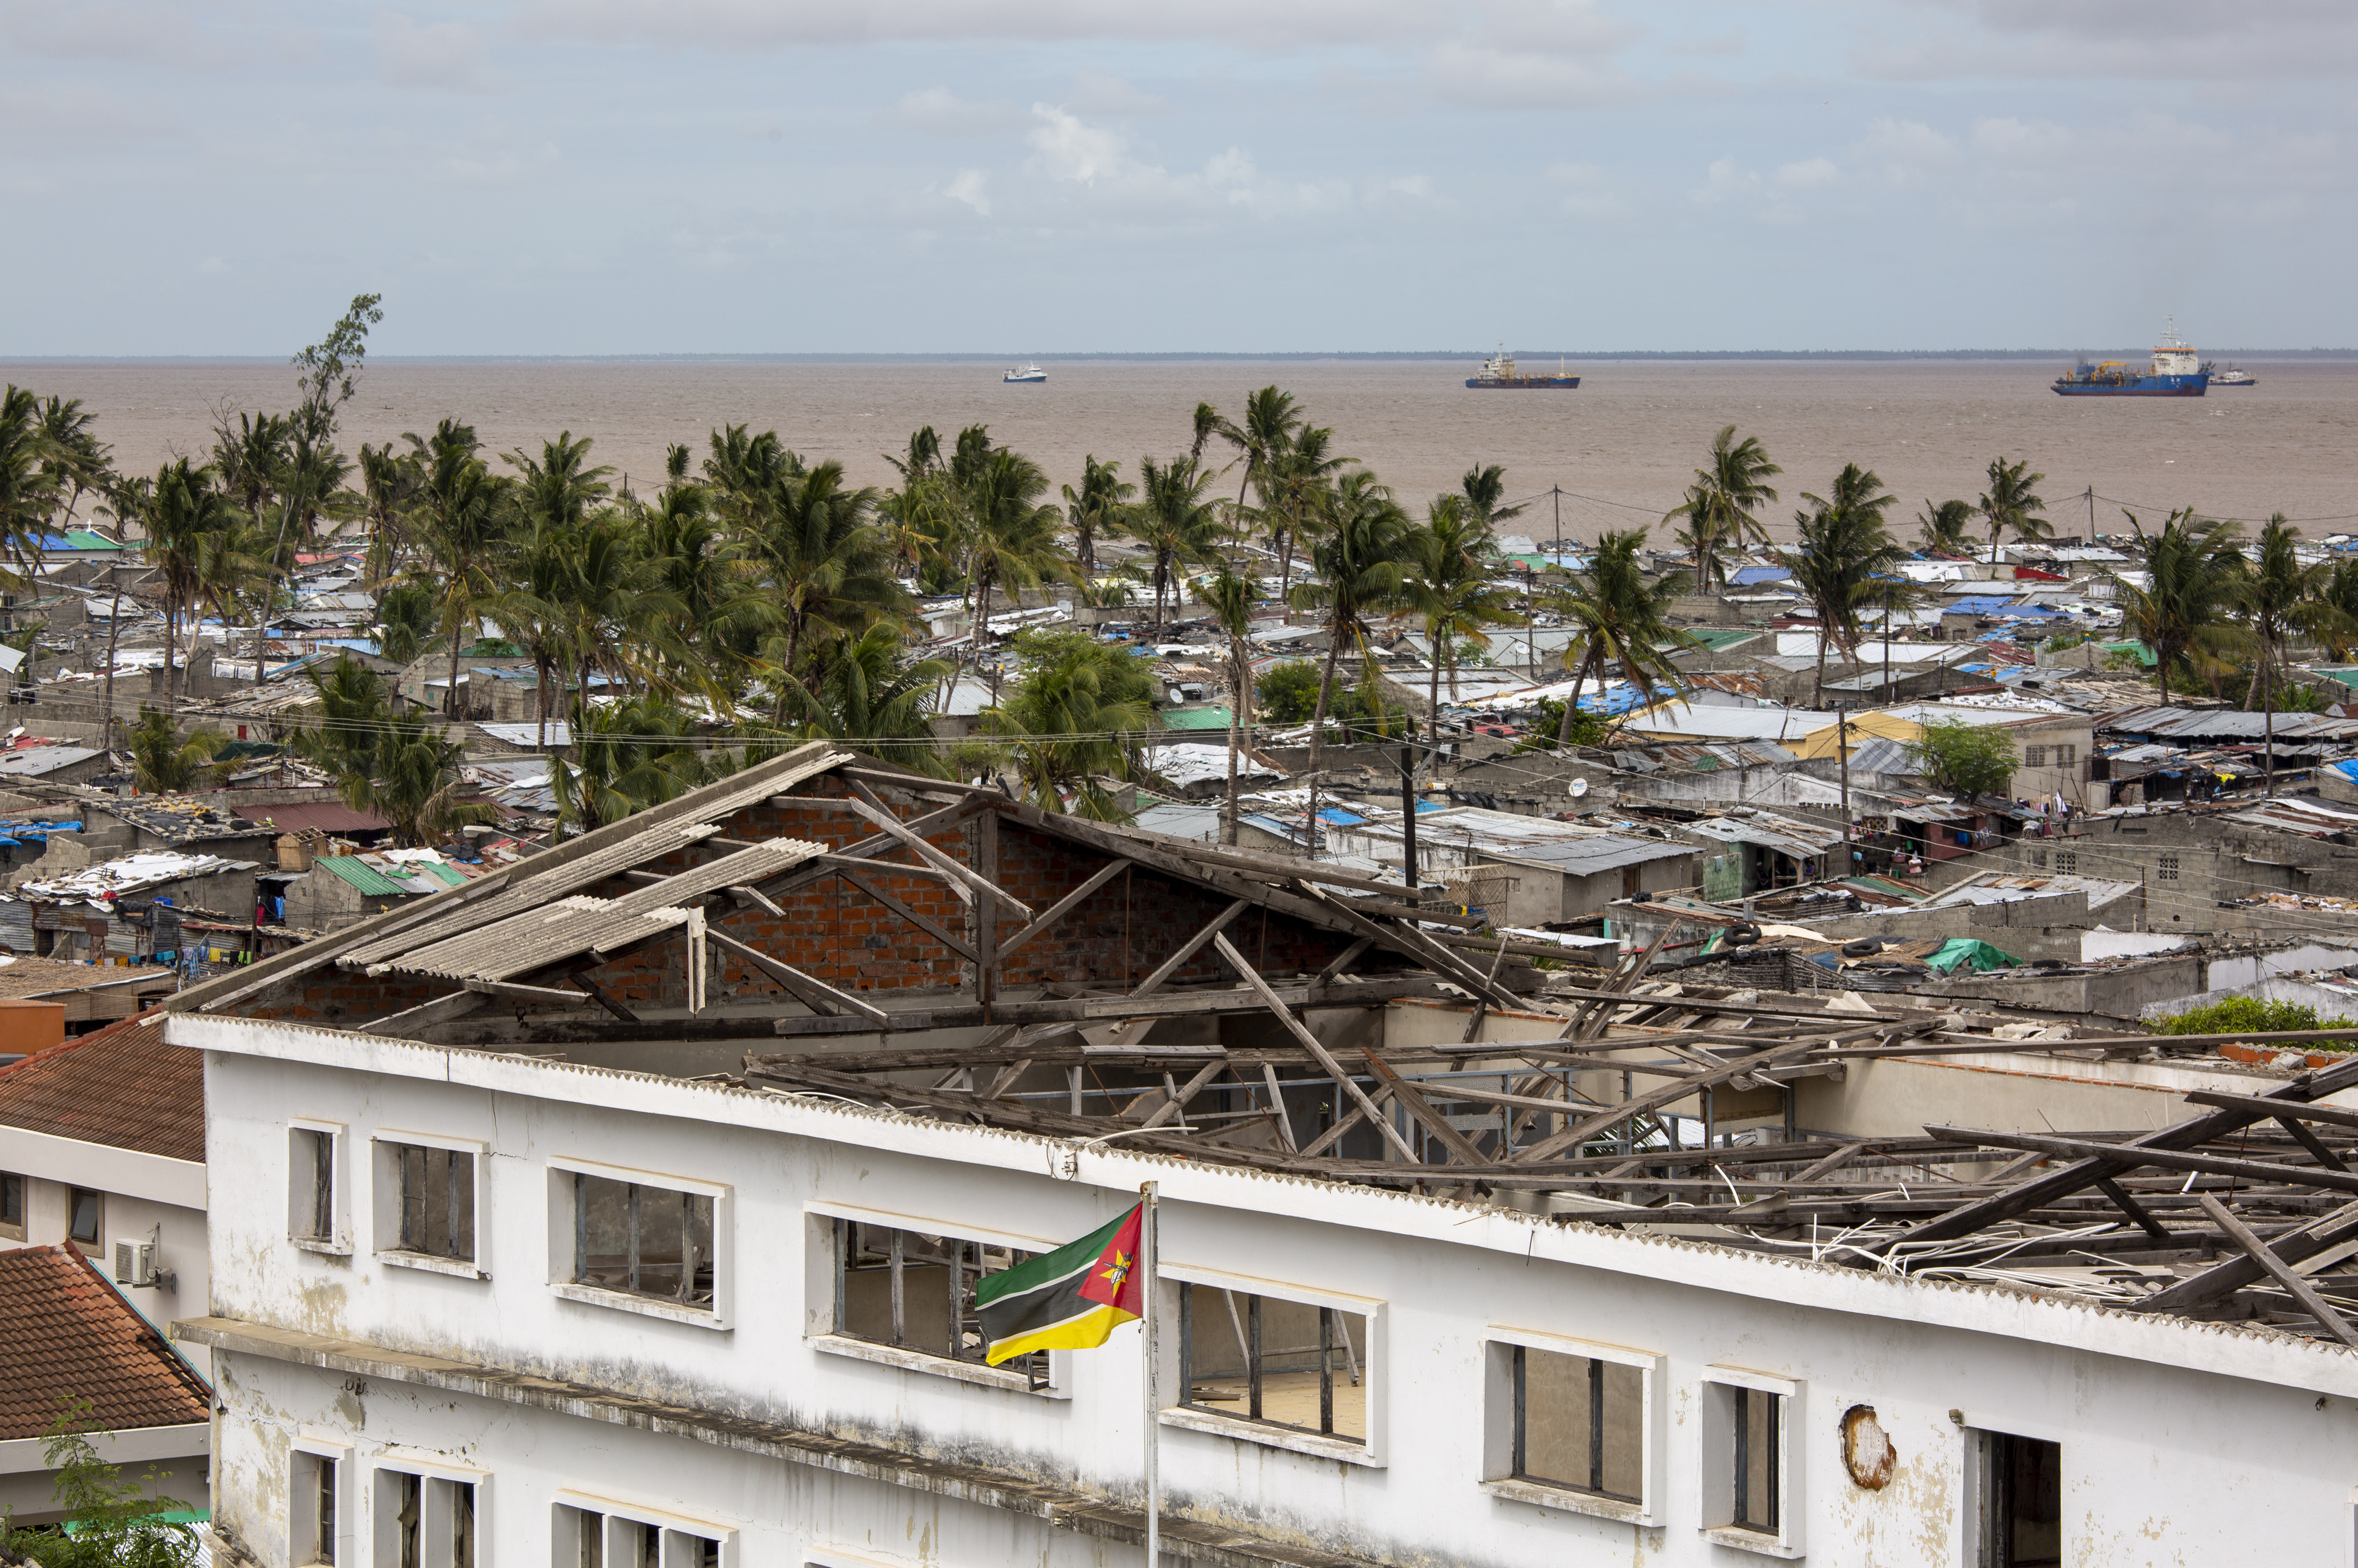 Destroyed roof in Beira